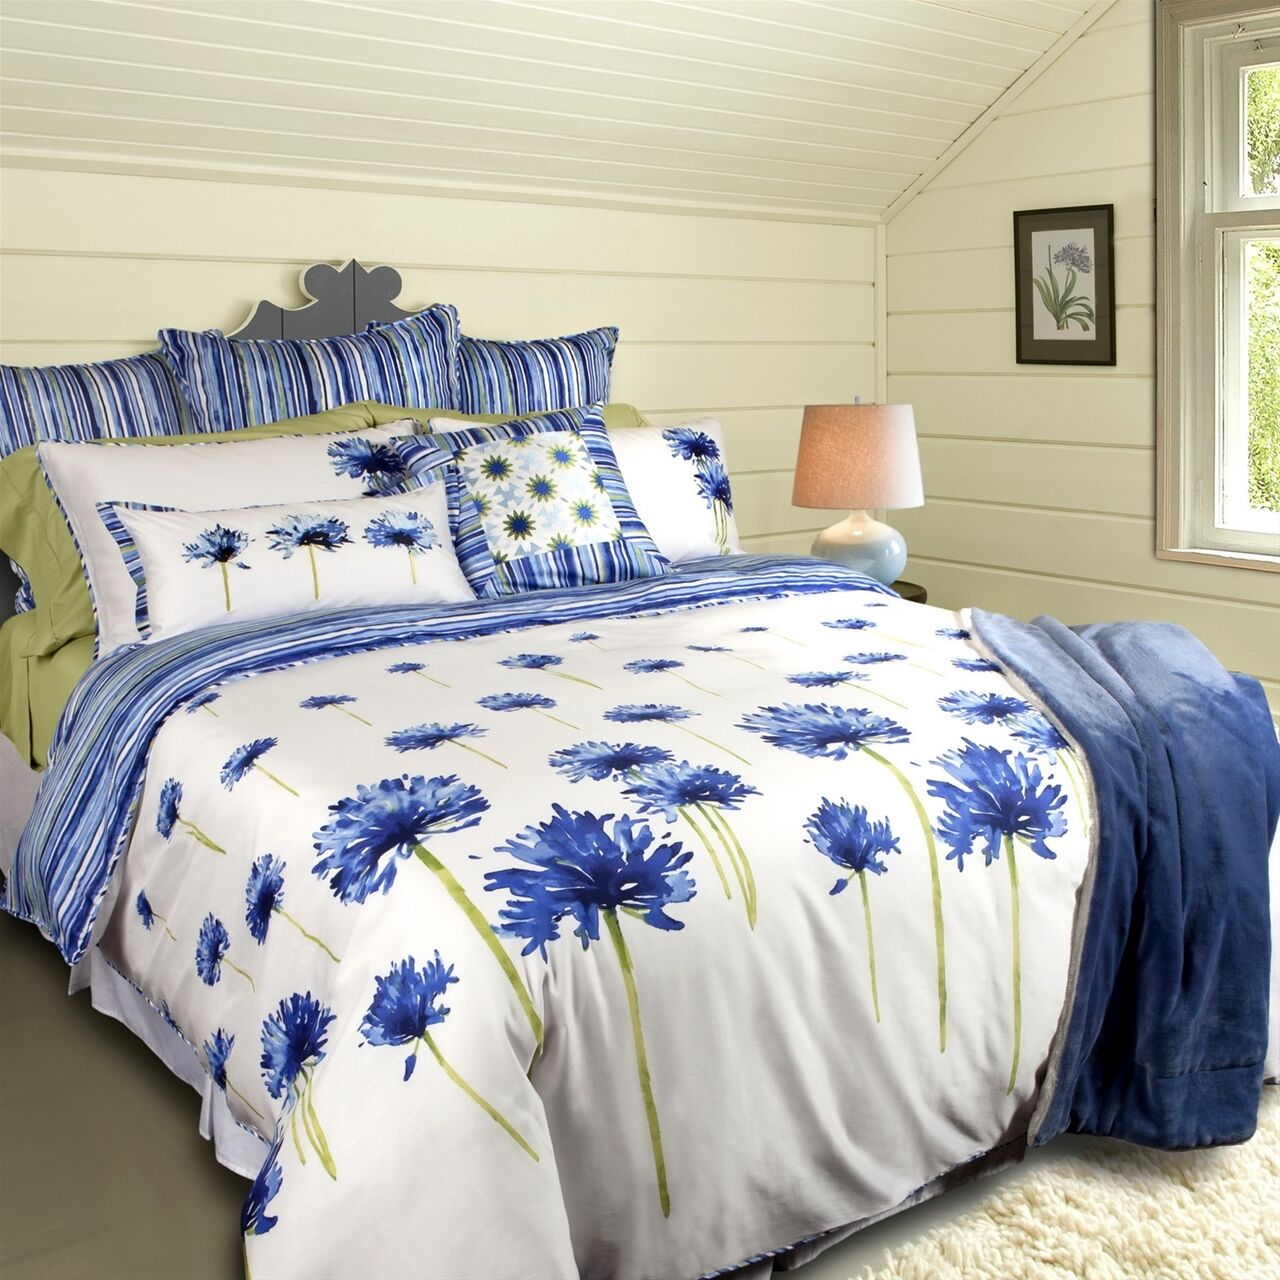 Agapanthus Blooms Luxury 300TC TENCEL Duvet Cover Set